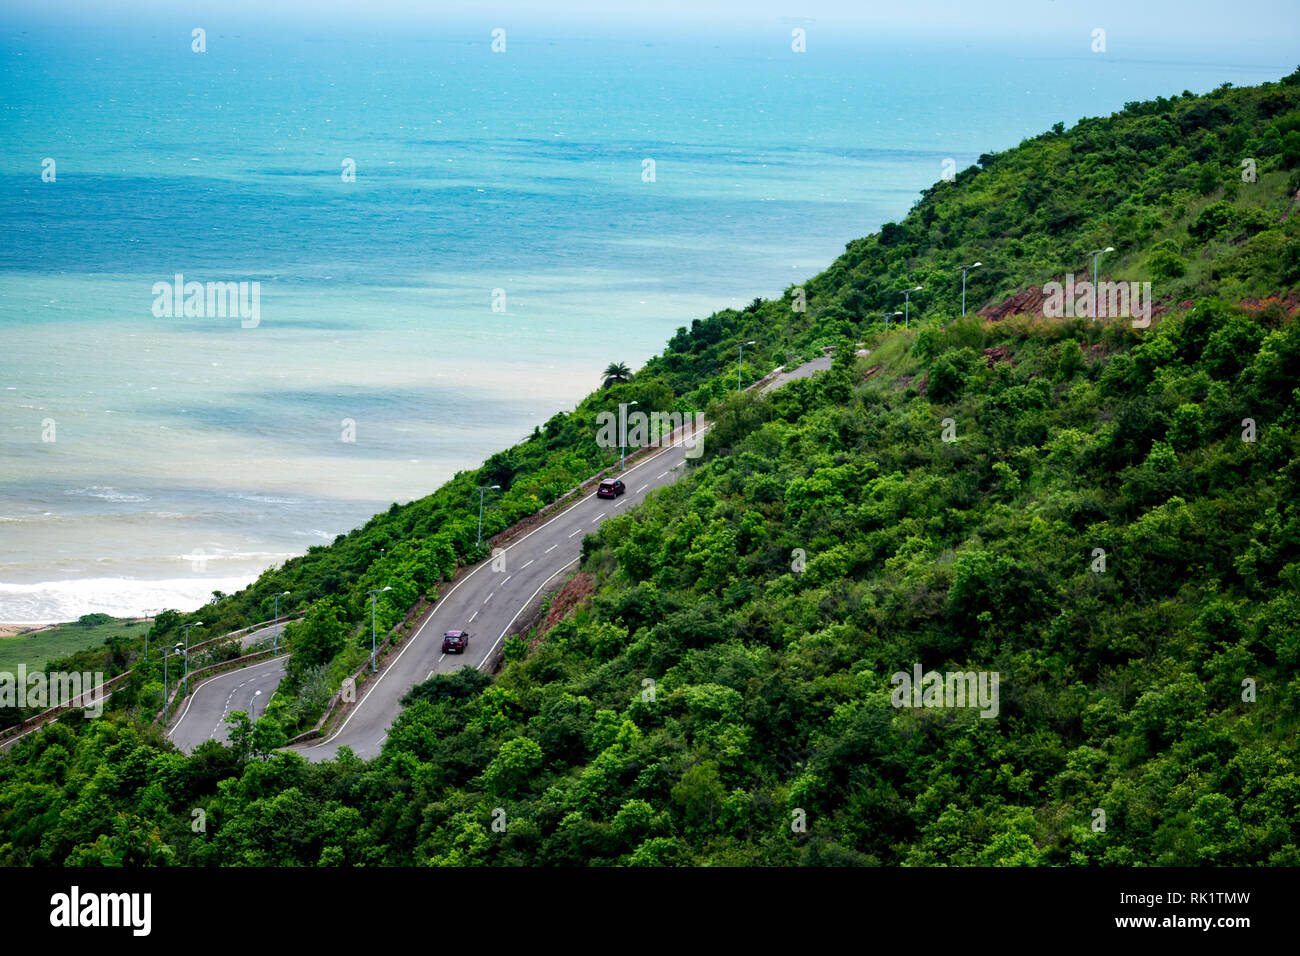 multilayer road going on a mountain looking awesome with a beach background. Stock Photo